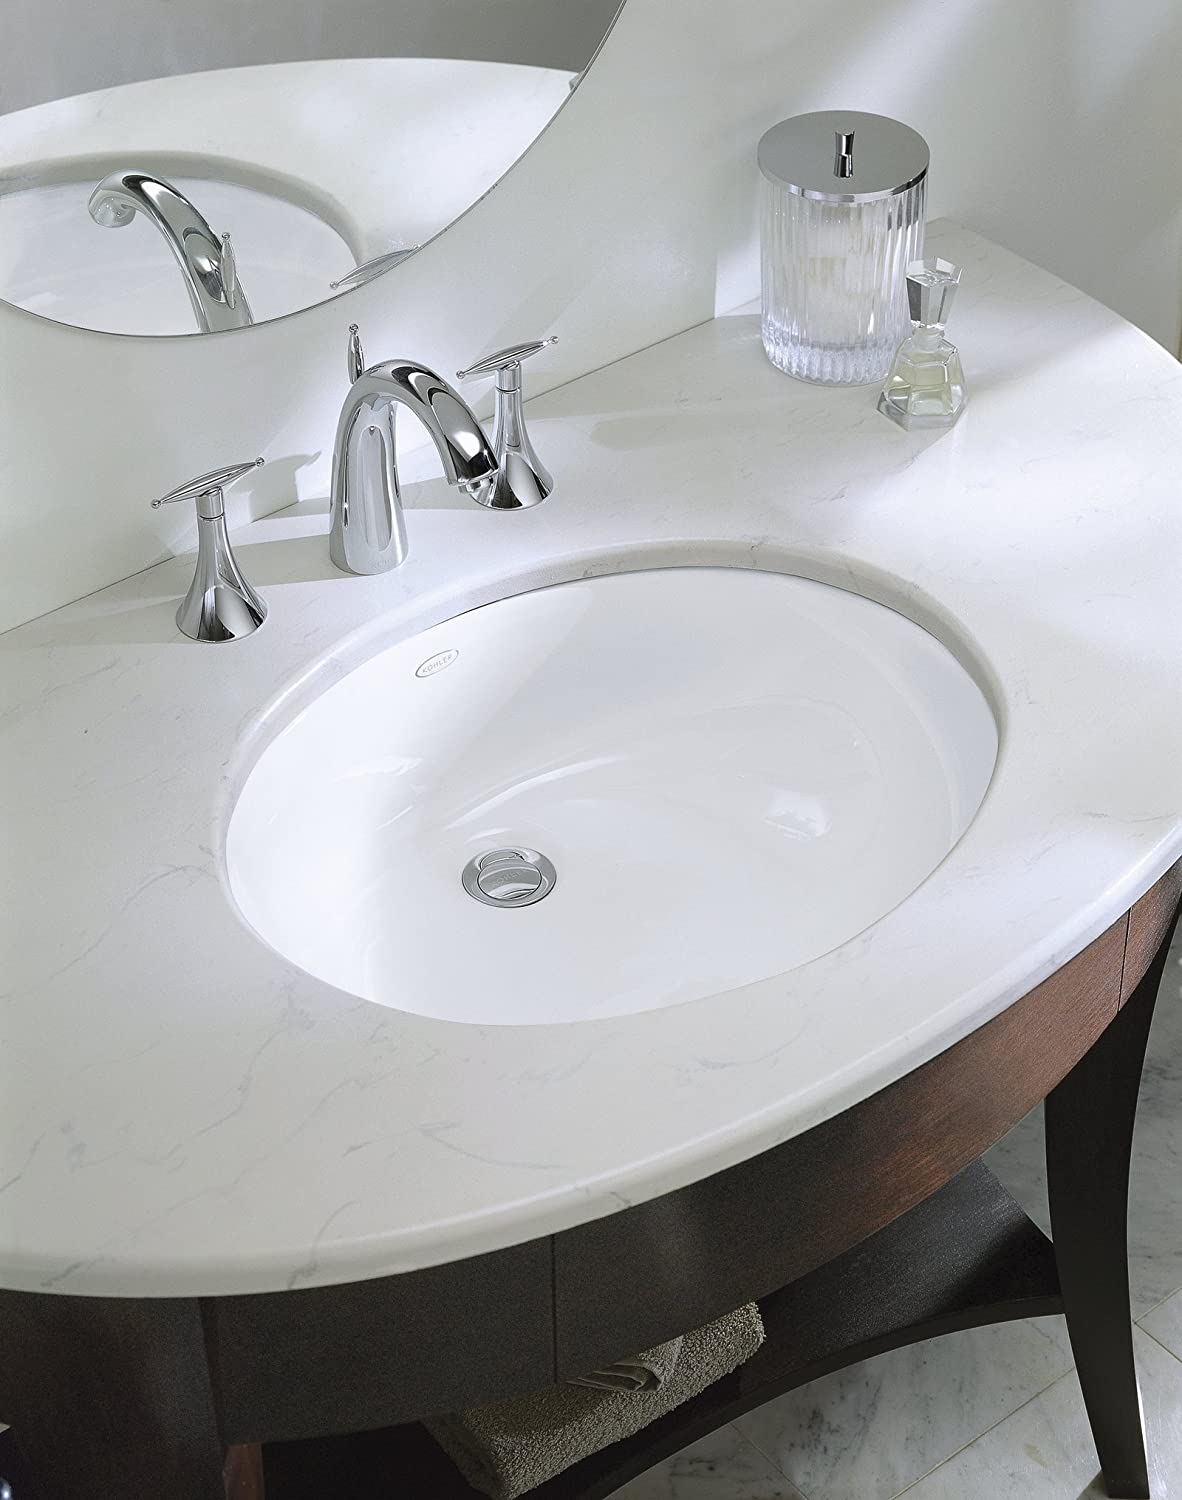 KOHLER K-2210-0 Caxton Undercounter Bathroom Sink, White - Vessel ...